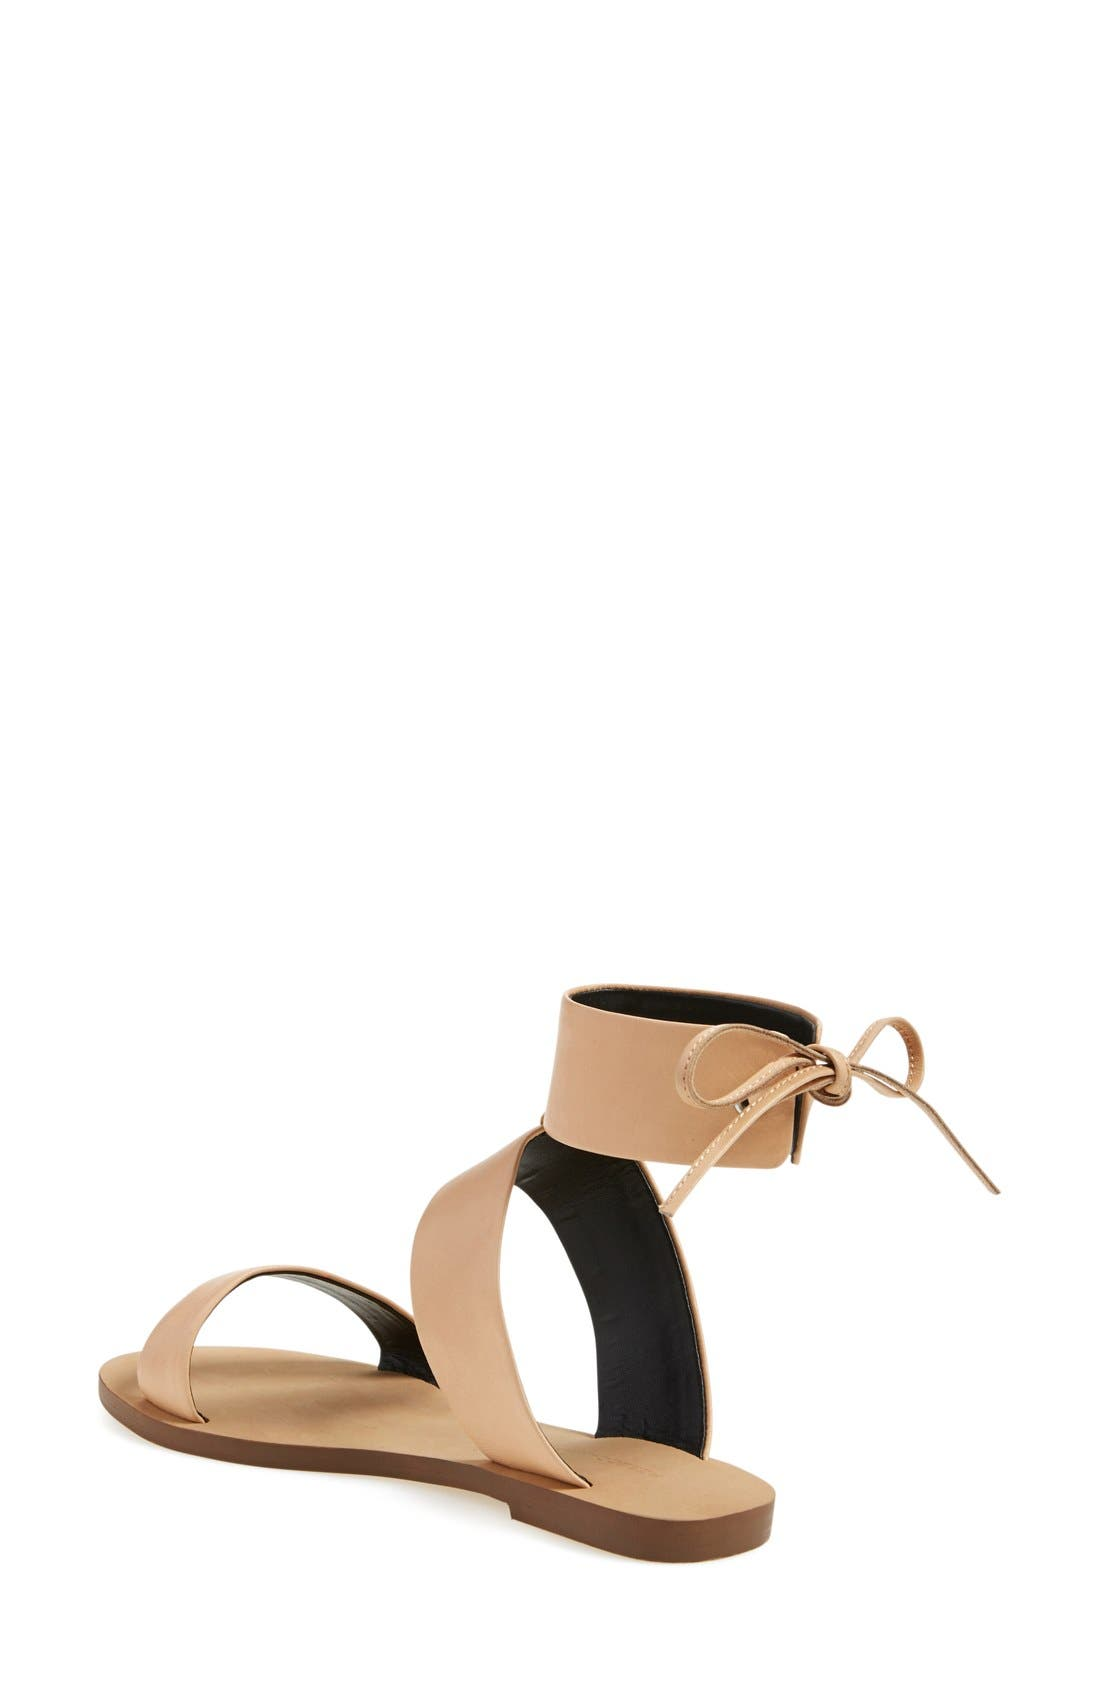 'Emma' Ankle Cuff Sandal,                             Alternate thumbnail 2, color,                             Nude Vachetta